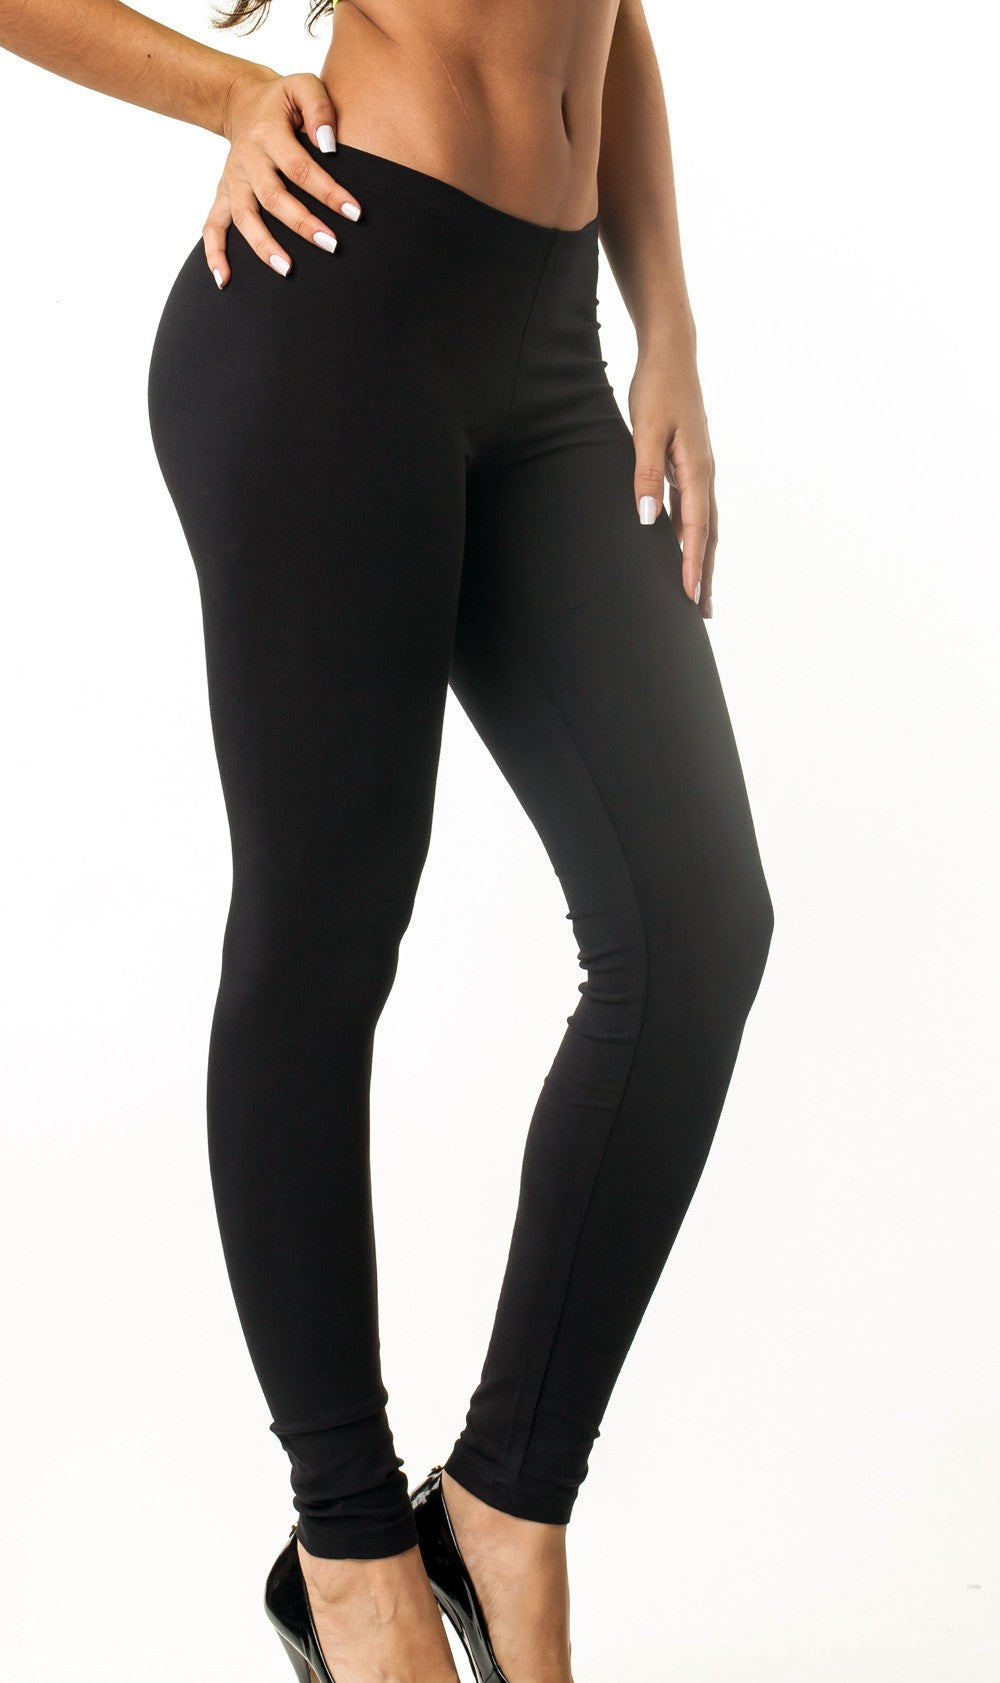 Black Full Length Legging Cotton 417